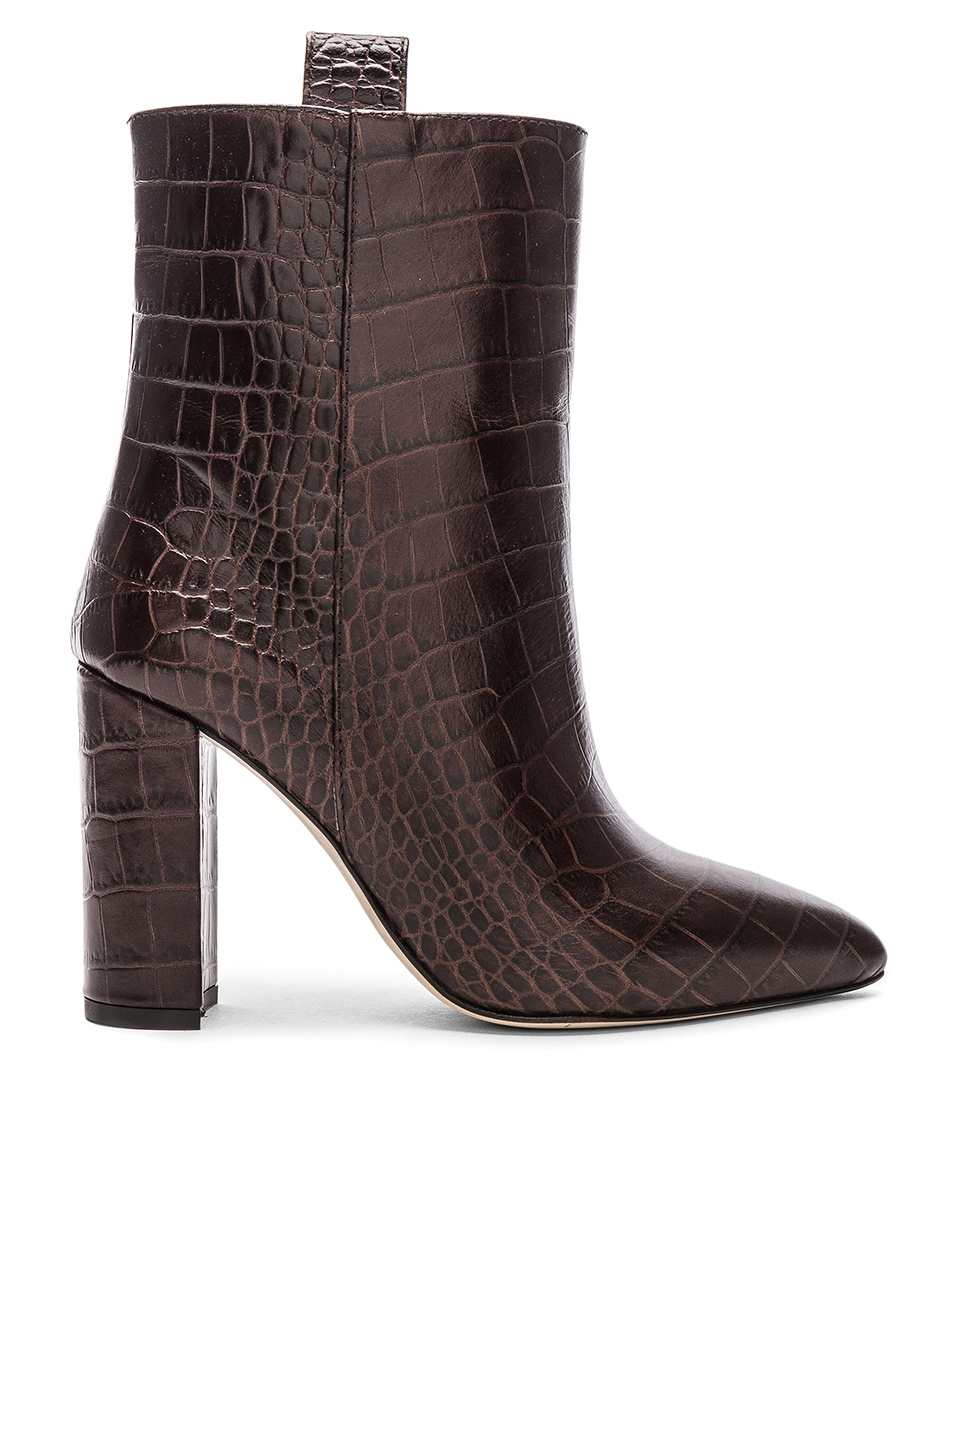 Image 1 of Paris Texas Ankle Boot in Dark Brown Croc